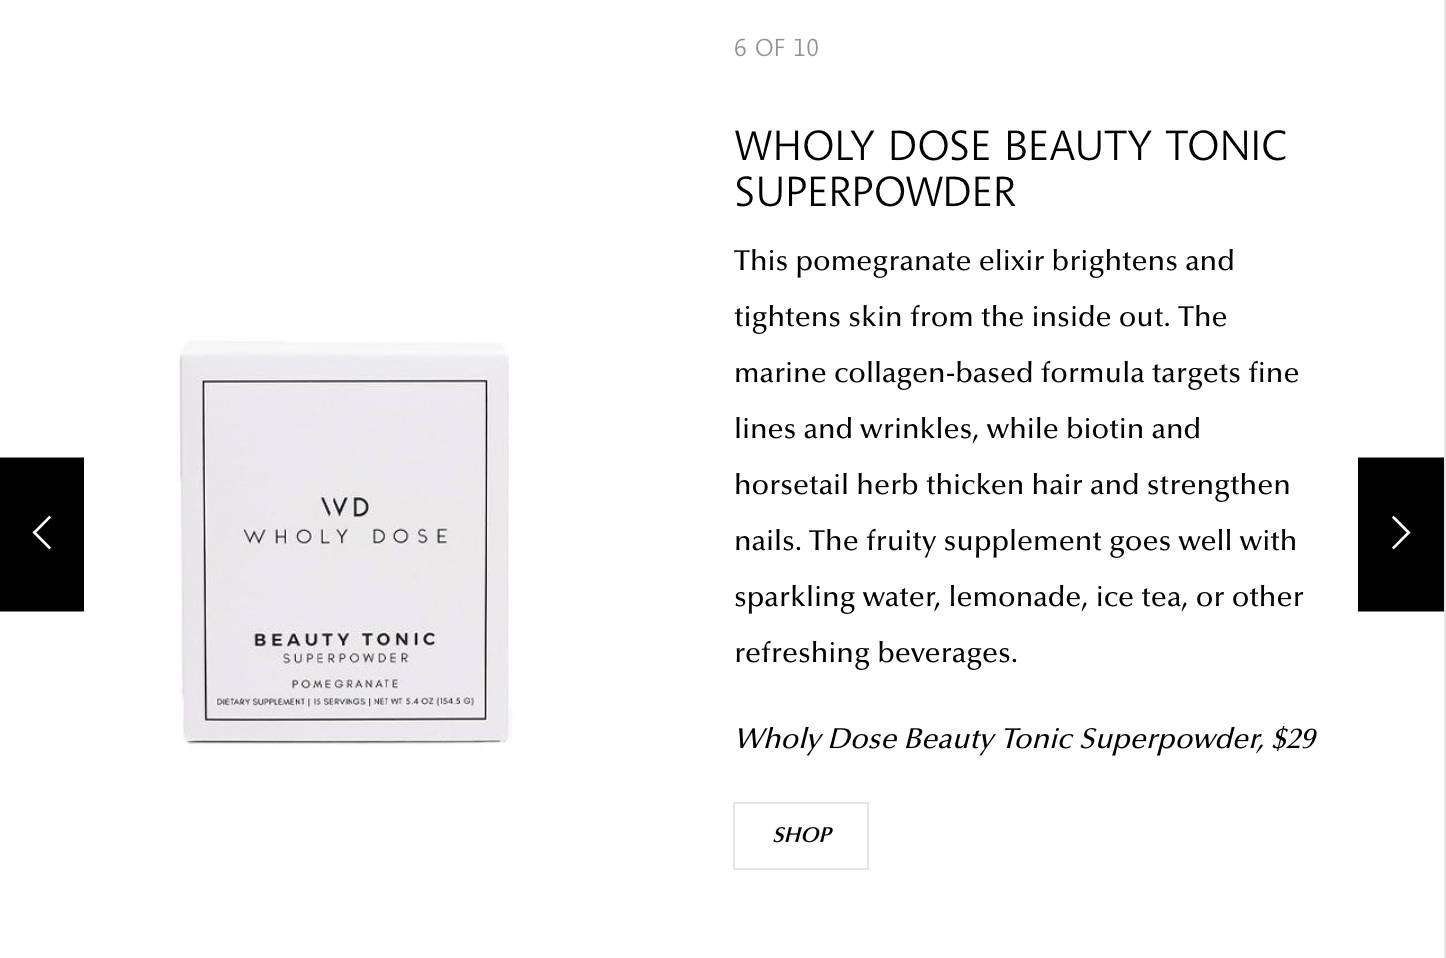 cr-fashion-book-beauty-supplements-wholy-dose